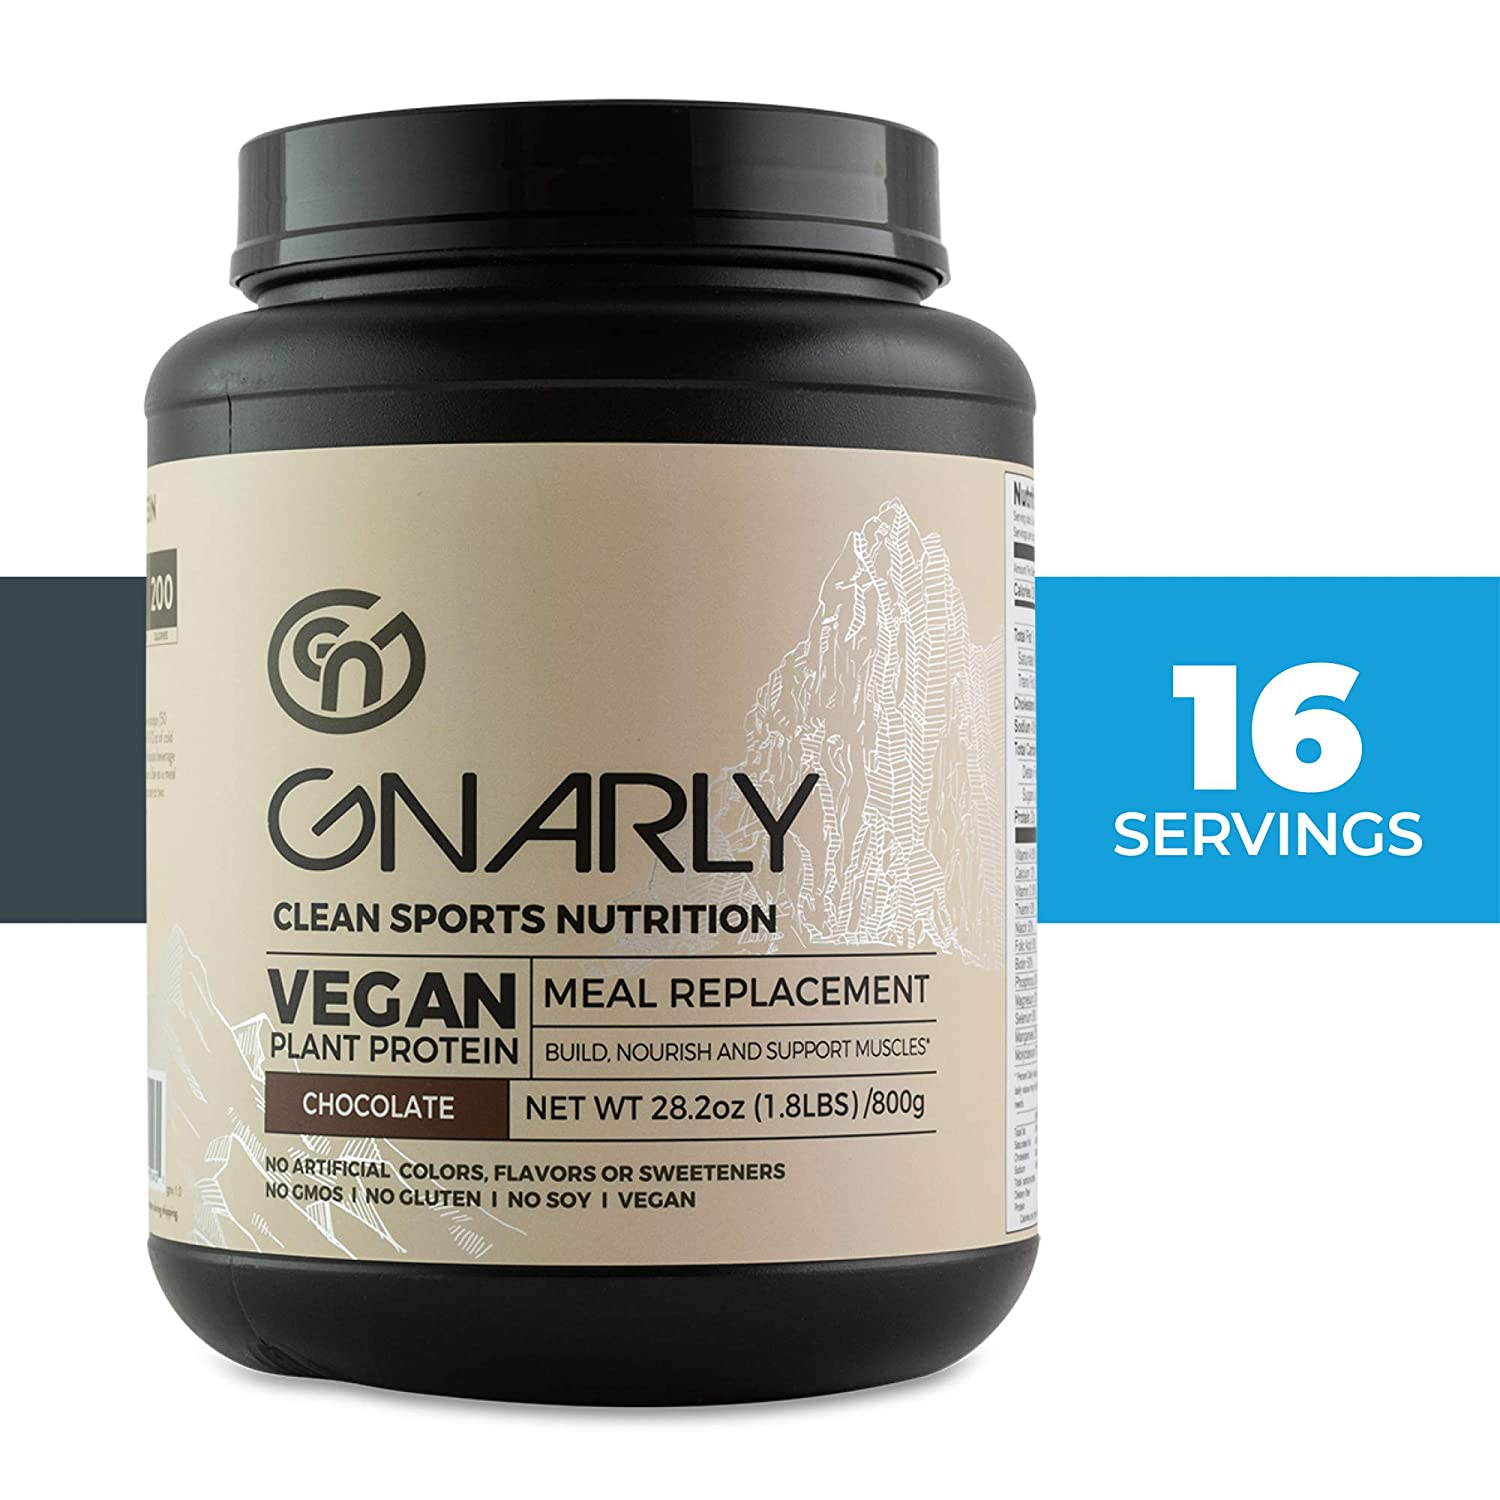 Gnarly Nutrition, Meal Replacement Vegan Protein Blend from Pea, Chia and Cranberry for Muscle Development, Chocolate, 28.2 Oz 16 Servings